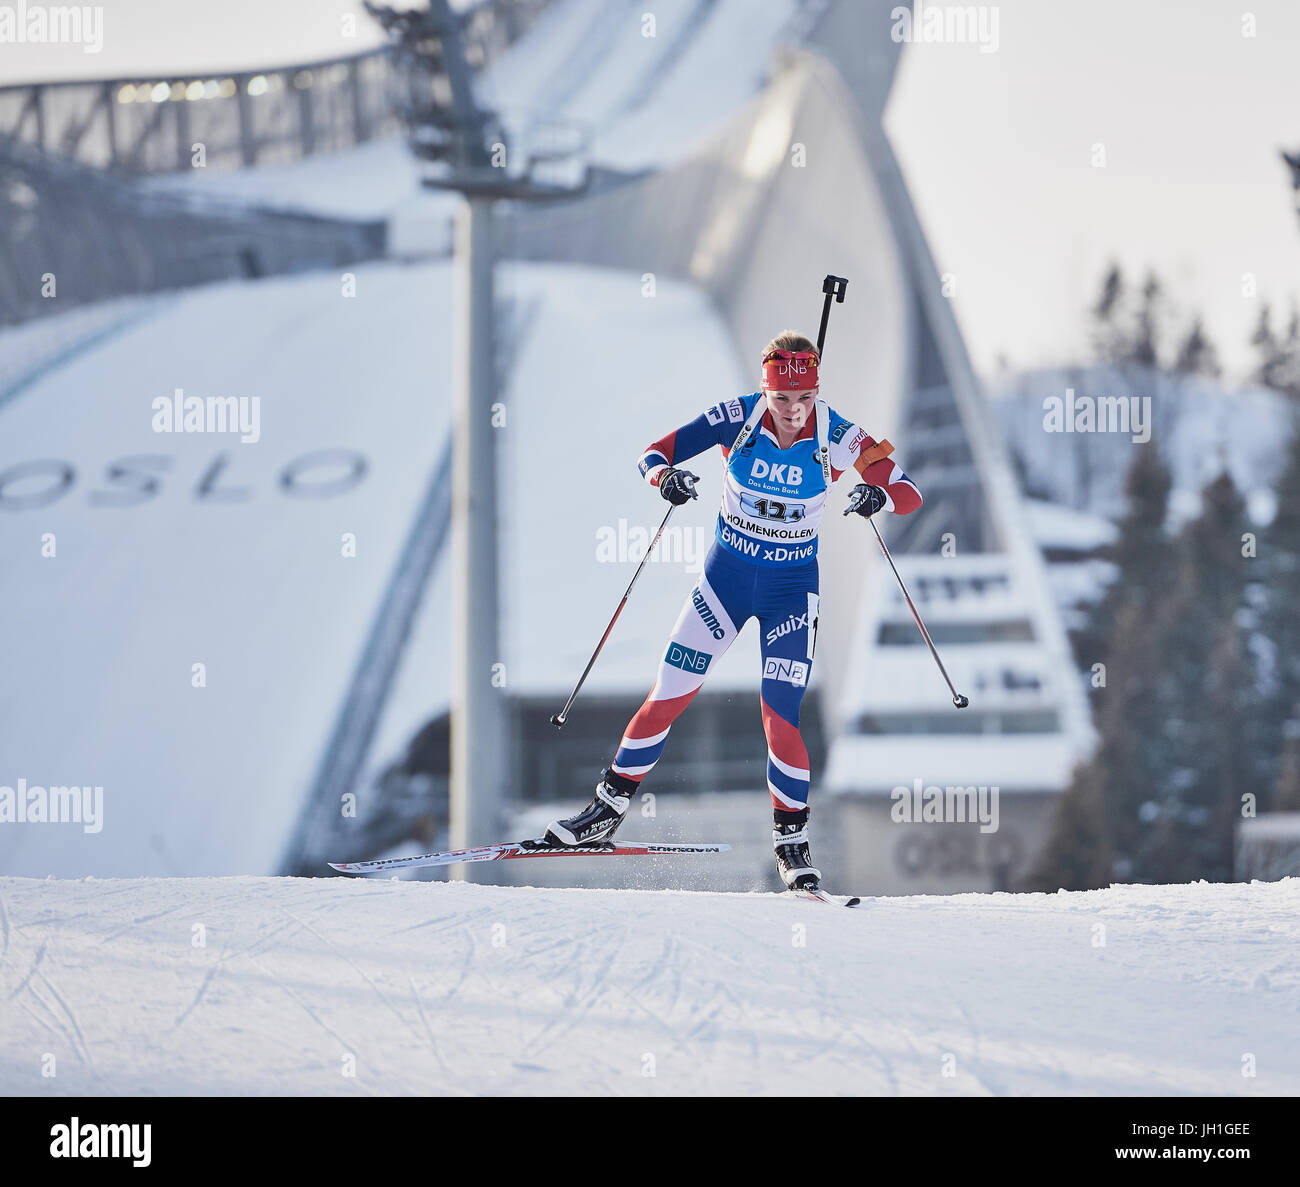 Marte Olsbu of Norway on the last leg of the woman's relay at the IBU Biathlon World Championships Oslo Norway - Stock Image